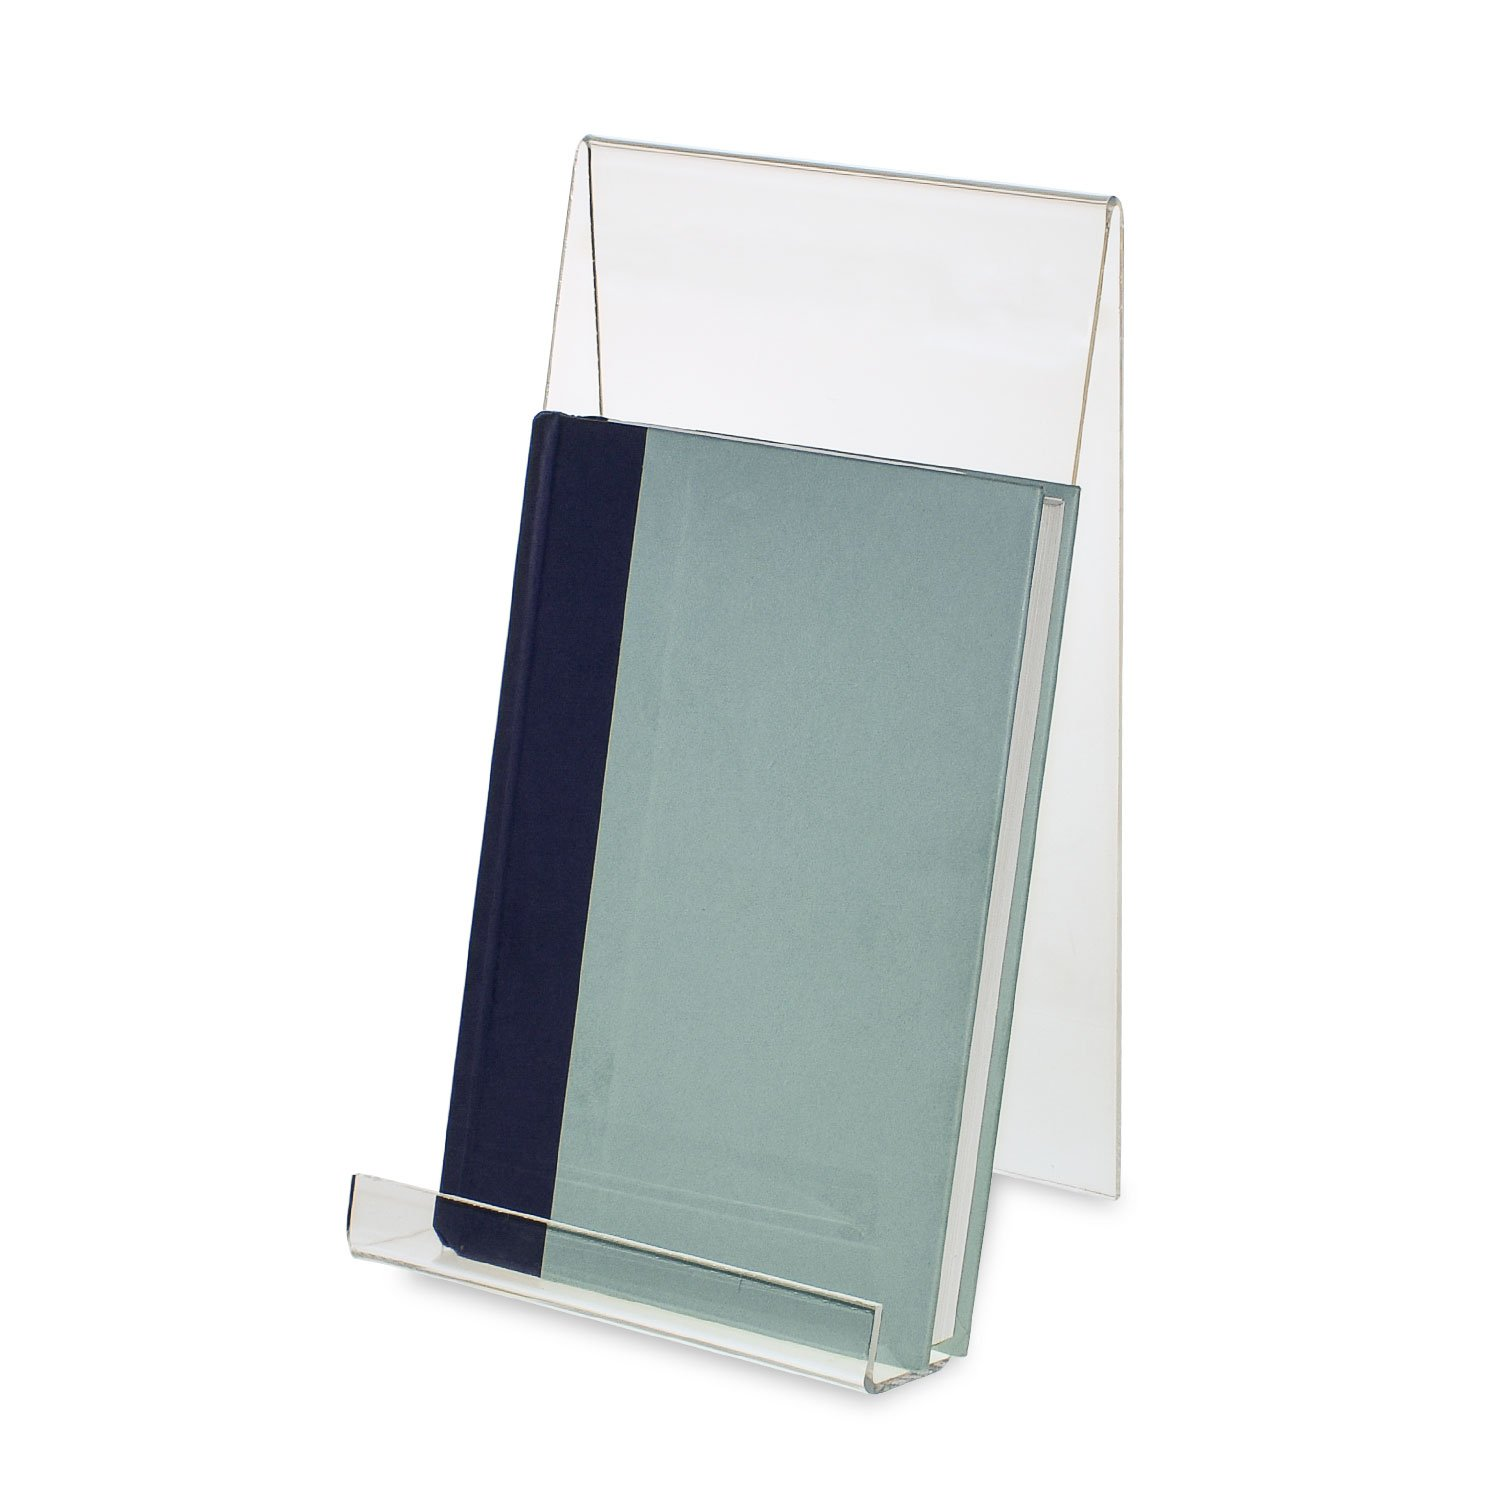 SOURCEONE.ORG Source One Deluxe Large Clear Acrylic Easel 11 x 6 Perfect for Displaying Books, Paintings, iPads (6)